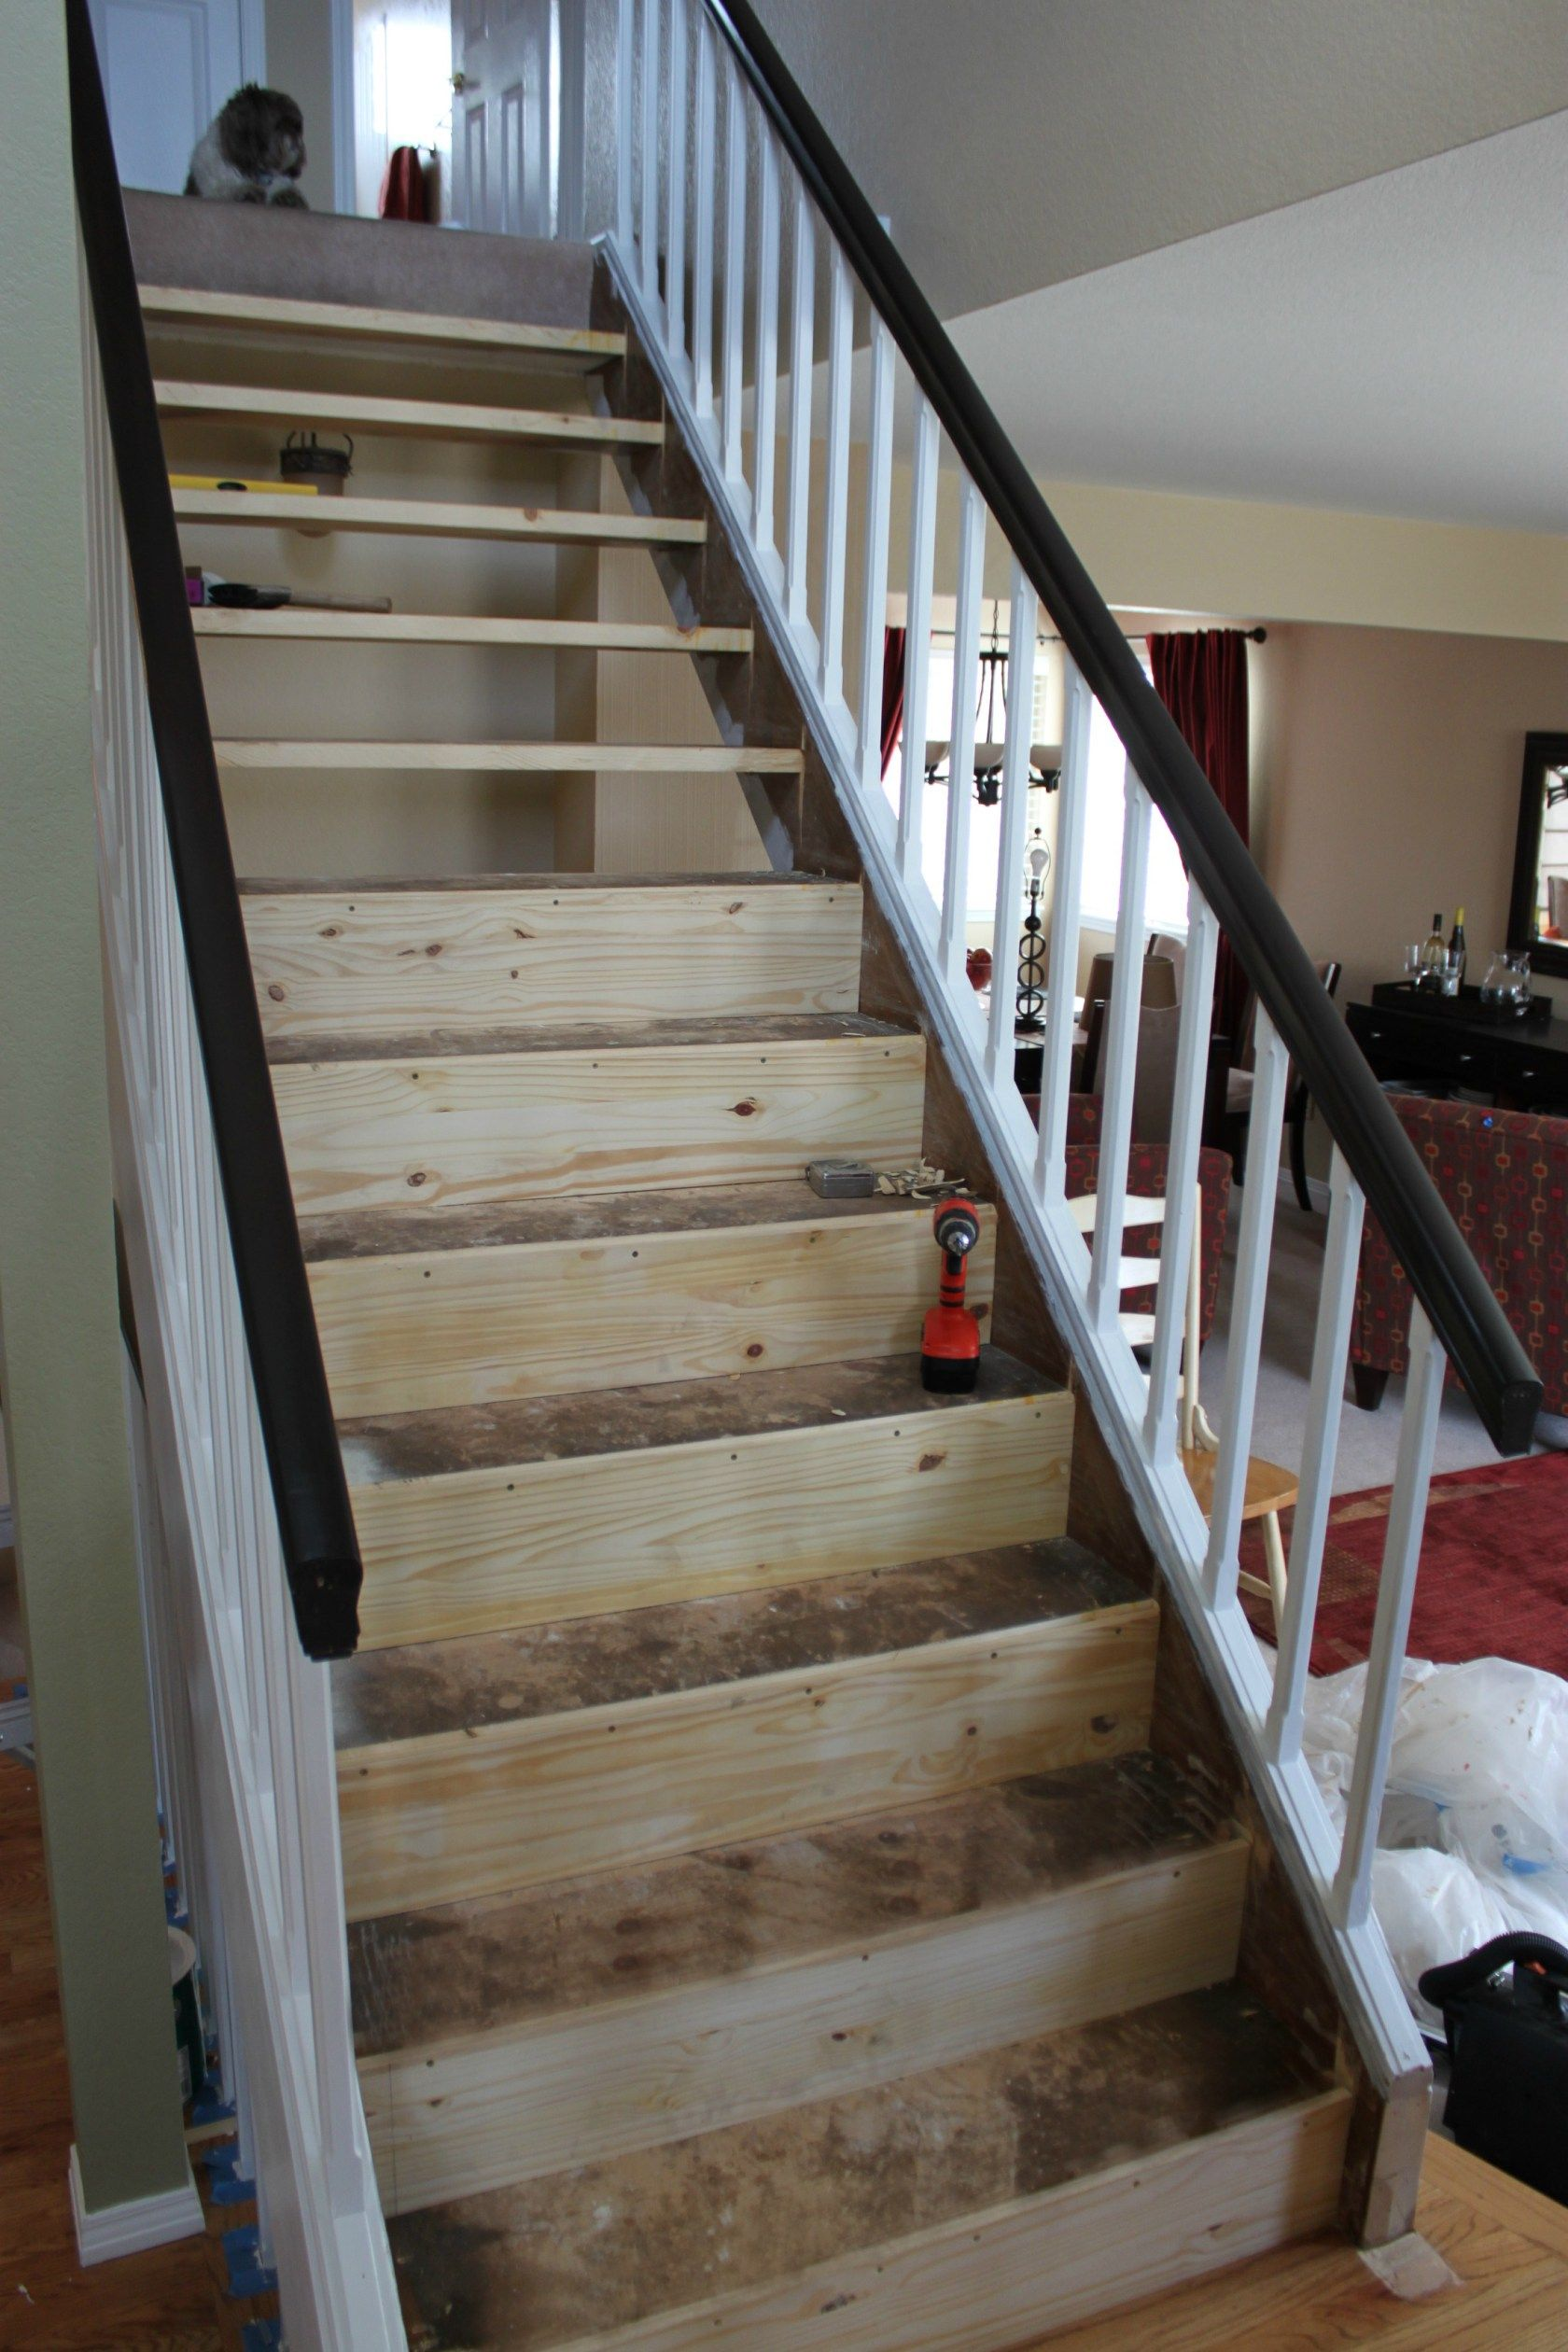 Refinishing Basement Stairs New Stairs For Under 100 Heading On Up Installing New Stair